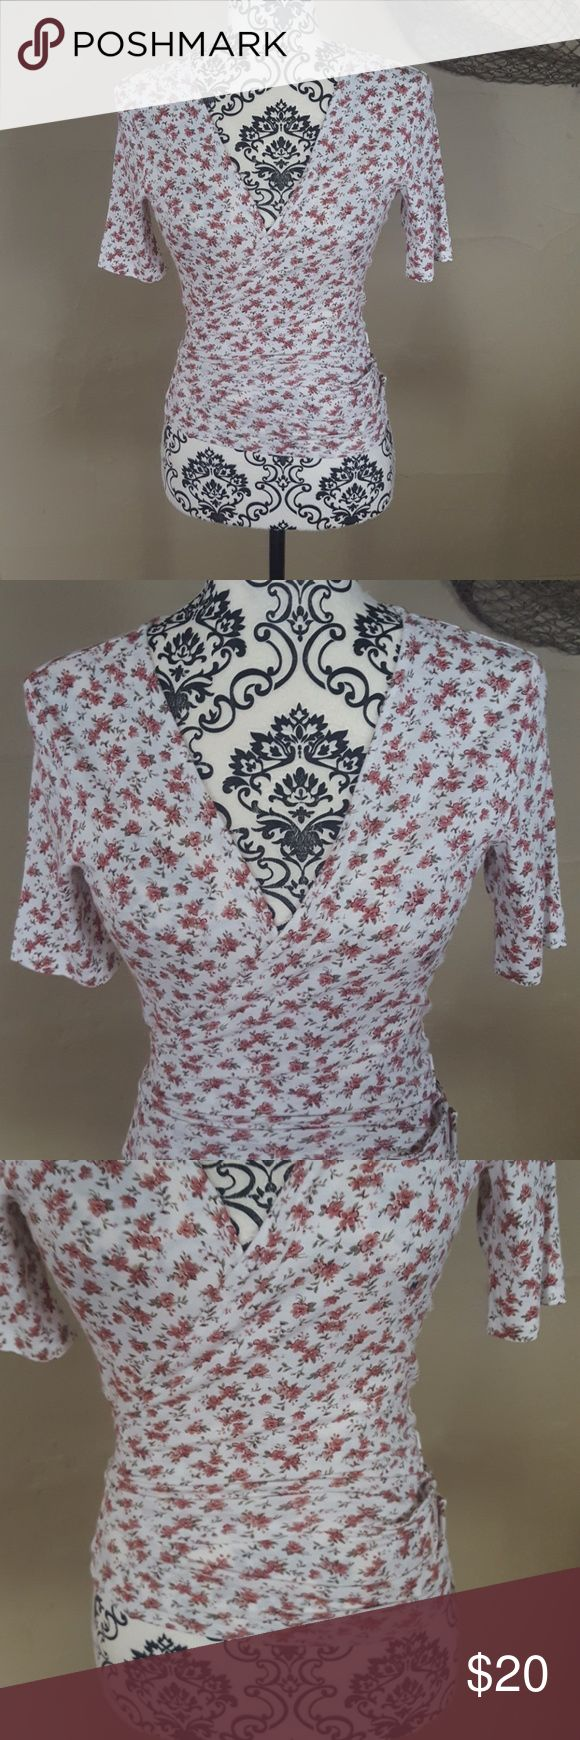 American Eagle Floral Wrap Top Brand new without tags! New style already sold out online! The top is a super light, stretchy material. Size Medium. Cream with floral print. Wraps around the front and ties in the back. Cropped but not super short. Keyhole in the back. Short sleeves. American Eagle Outfitters Tops Tees - Short Sleeve